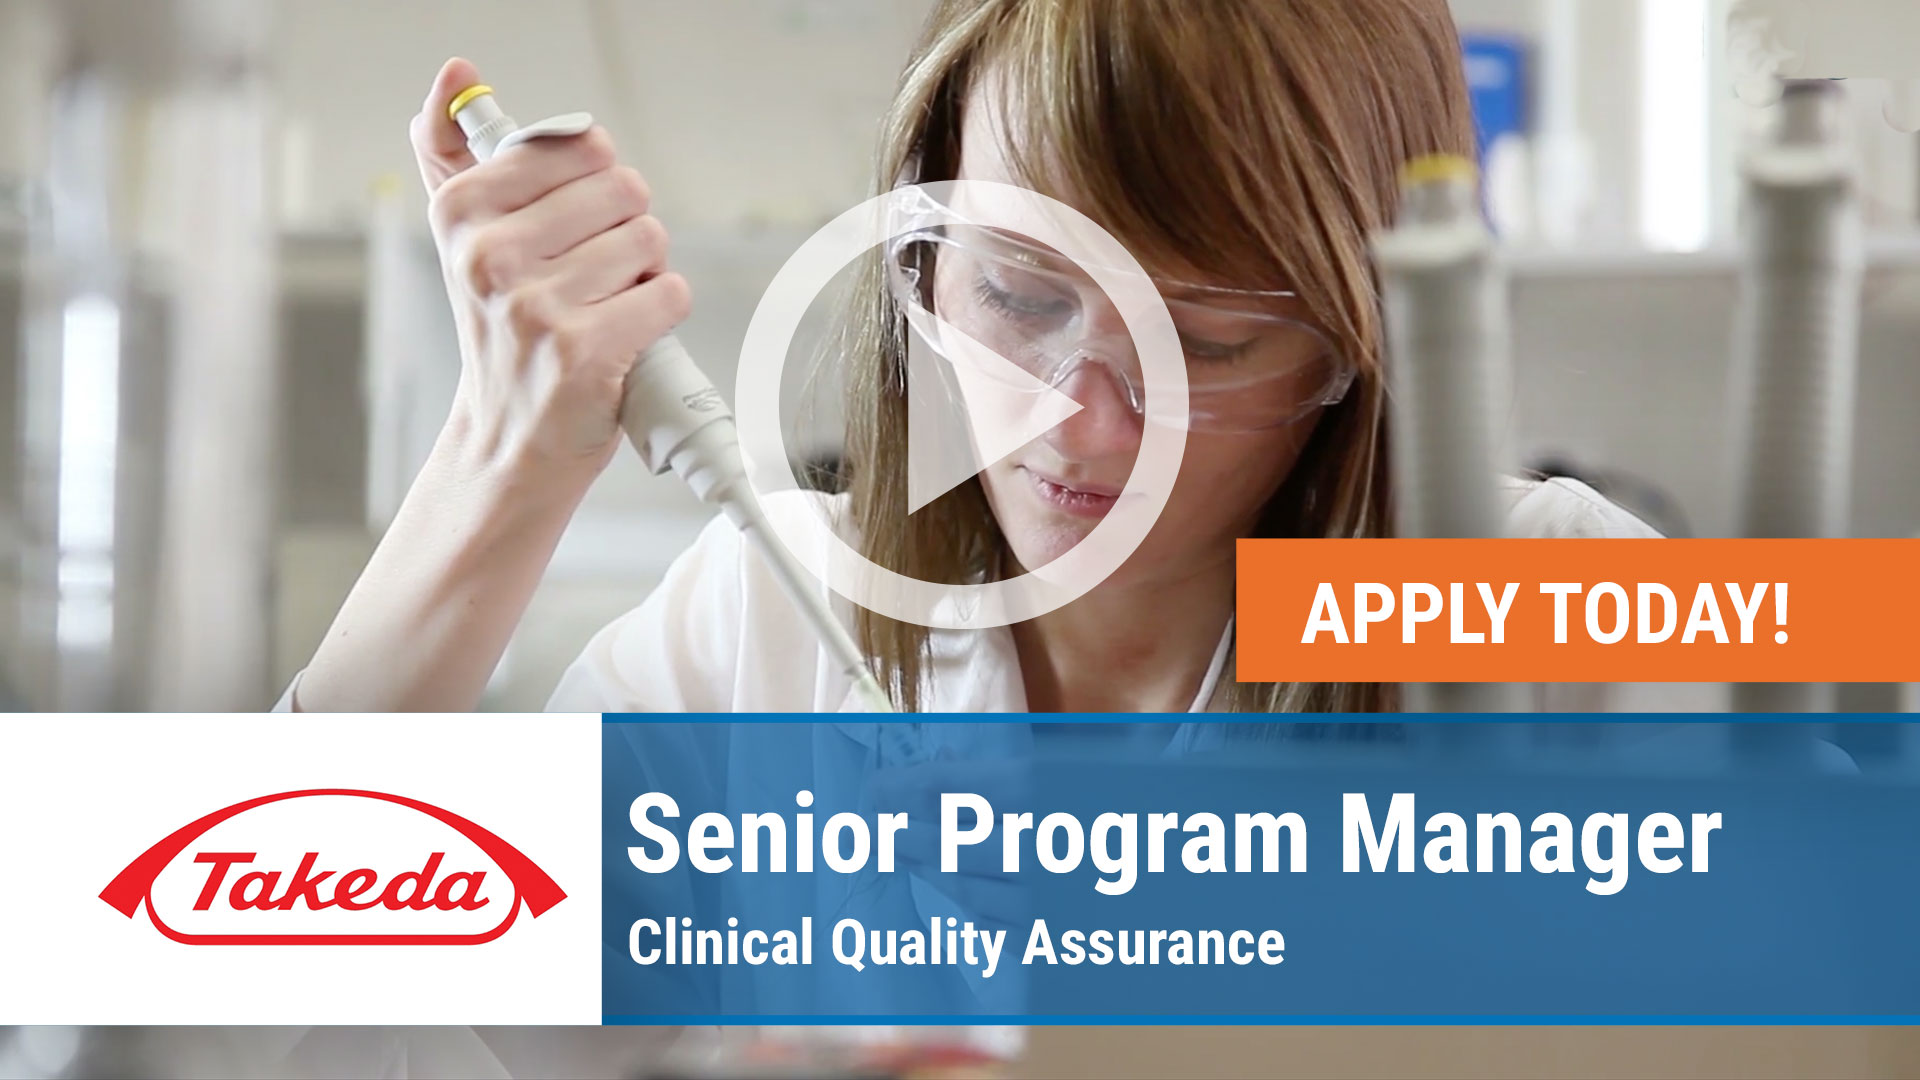 Watch our careers video for available job opening Senior Program Manager - Program Manager - Clinic in Cambridge, MA